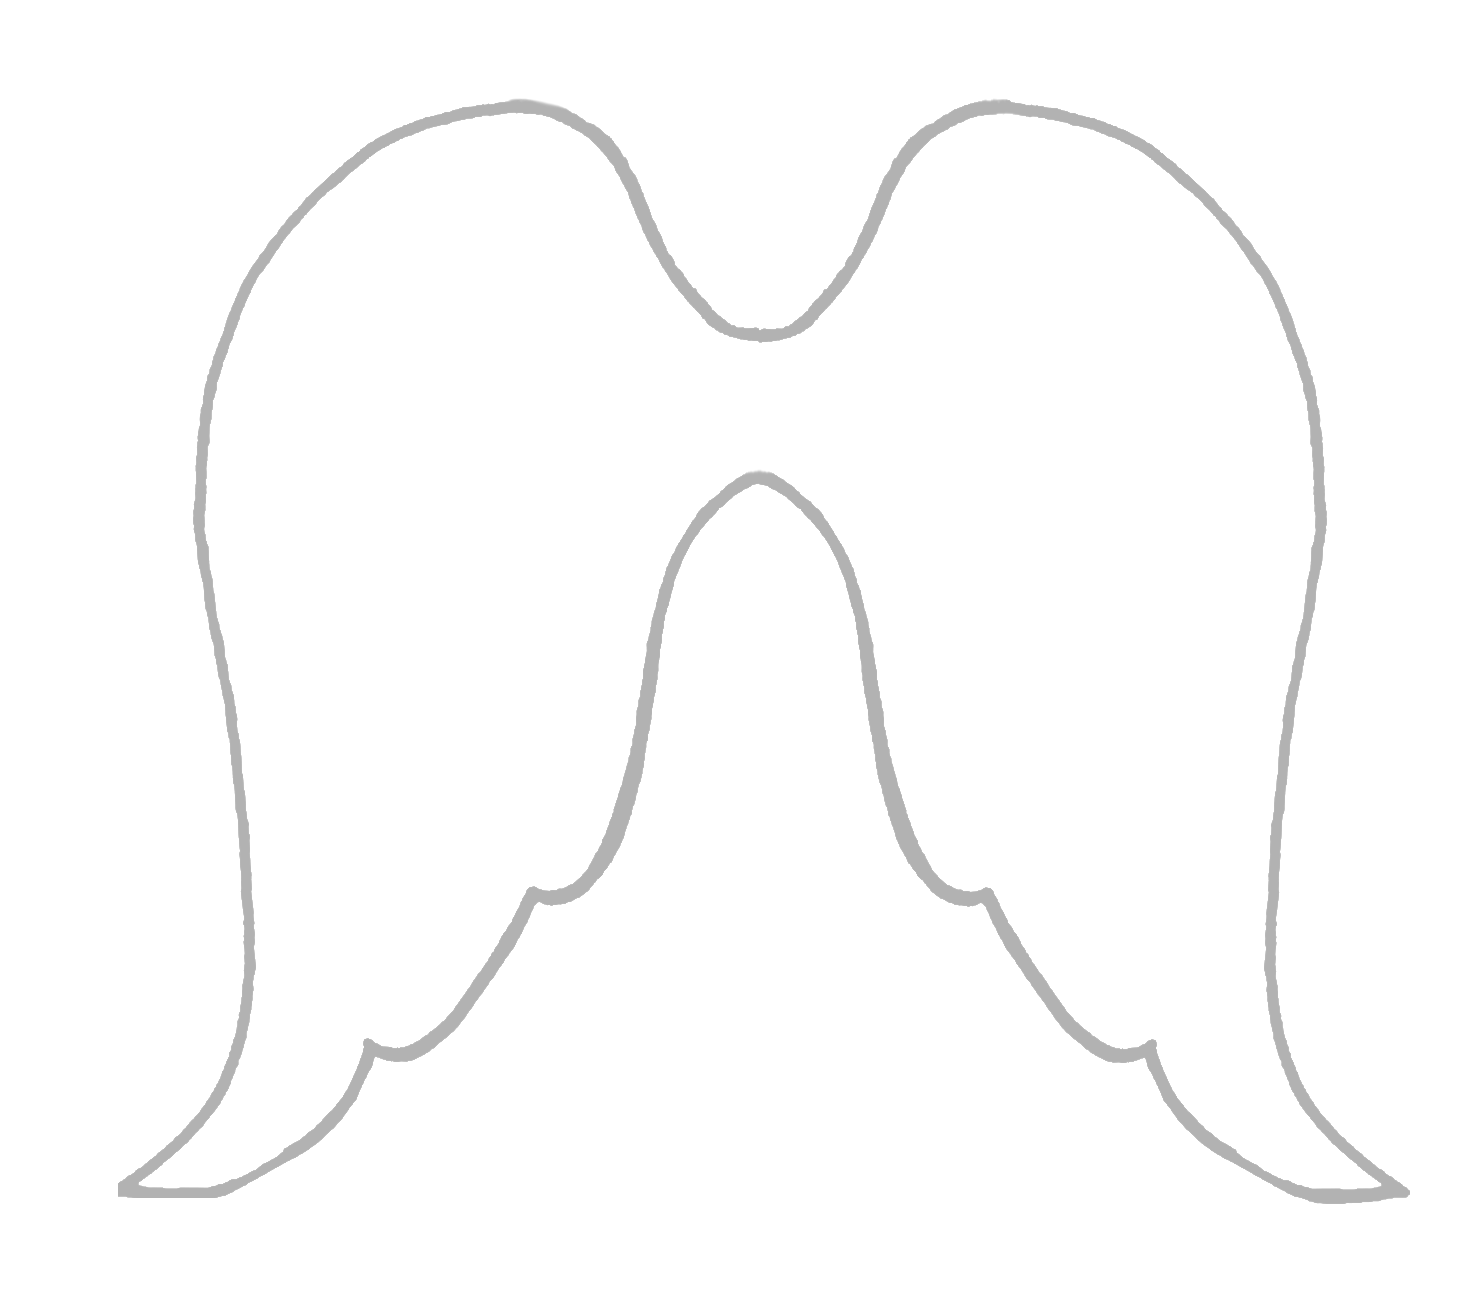 angel wing cut out template - photo #3